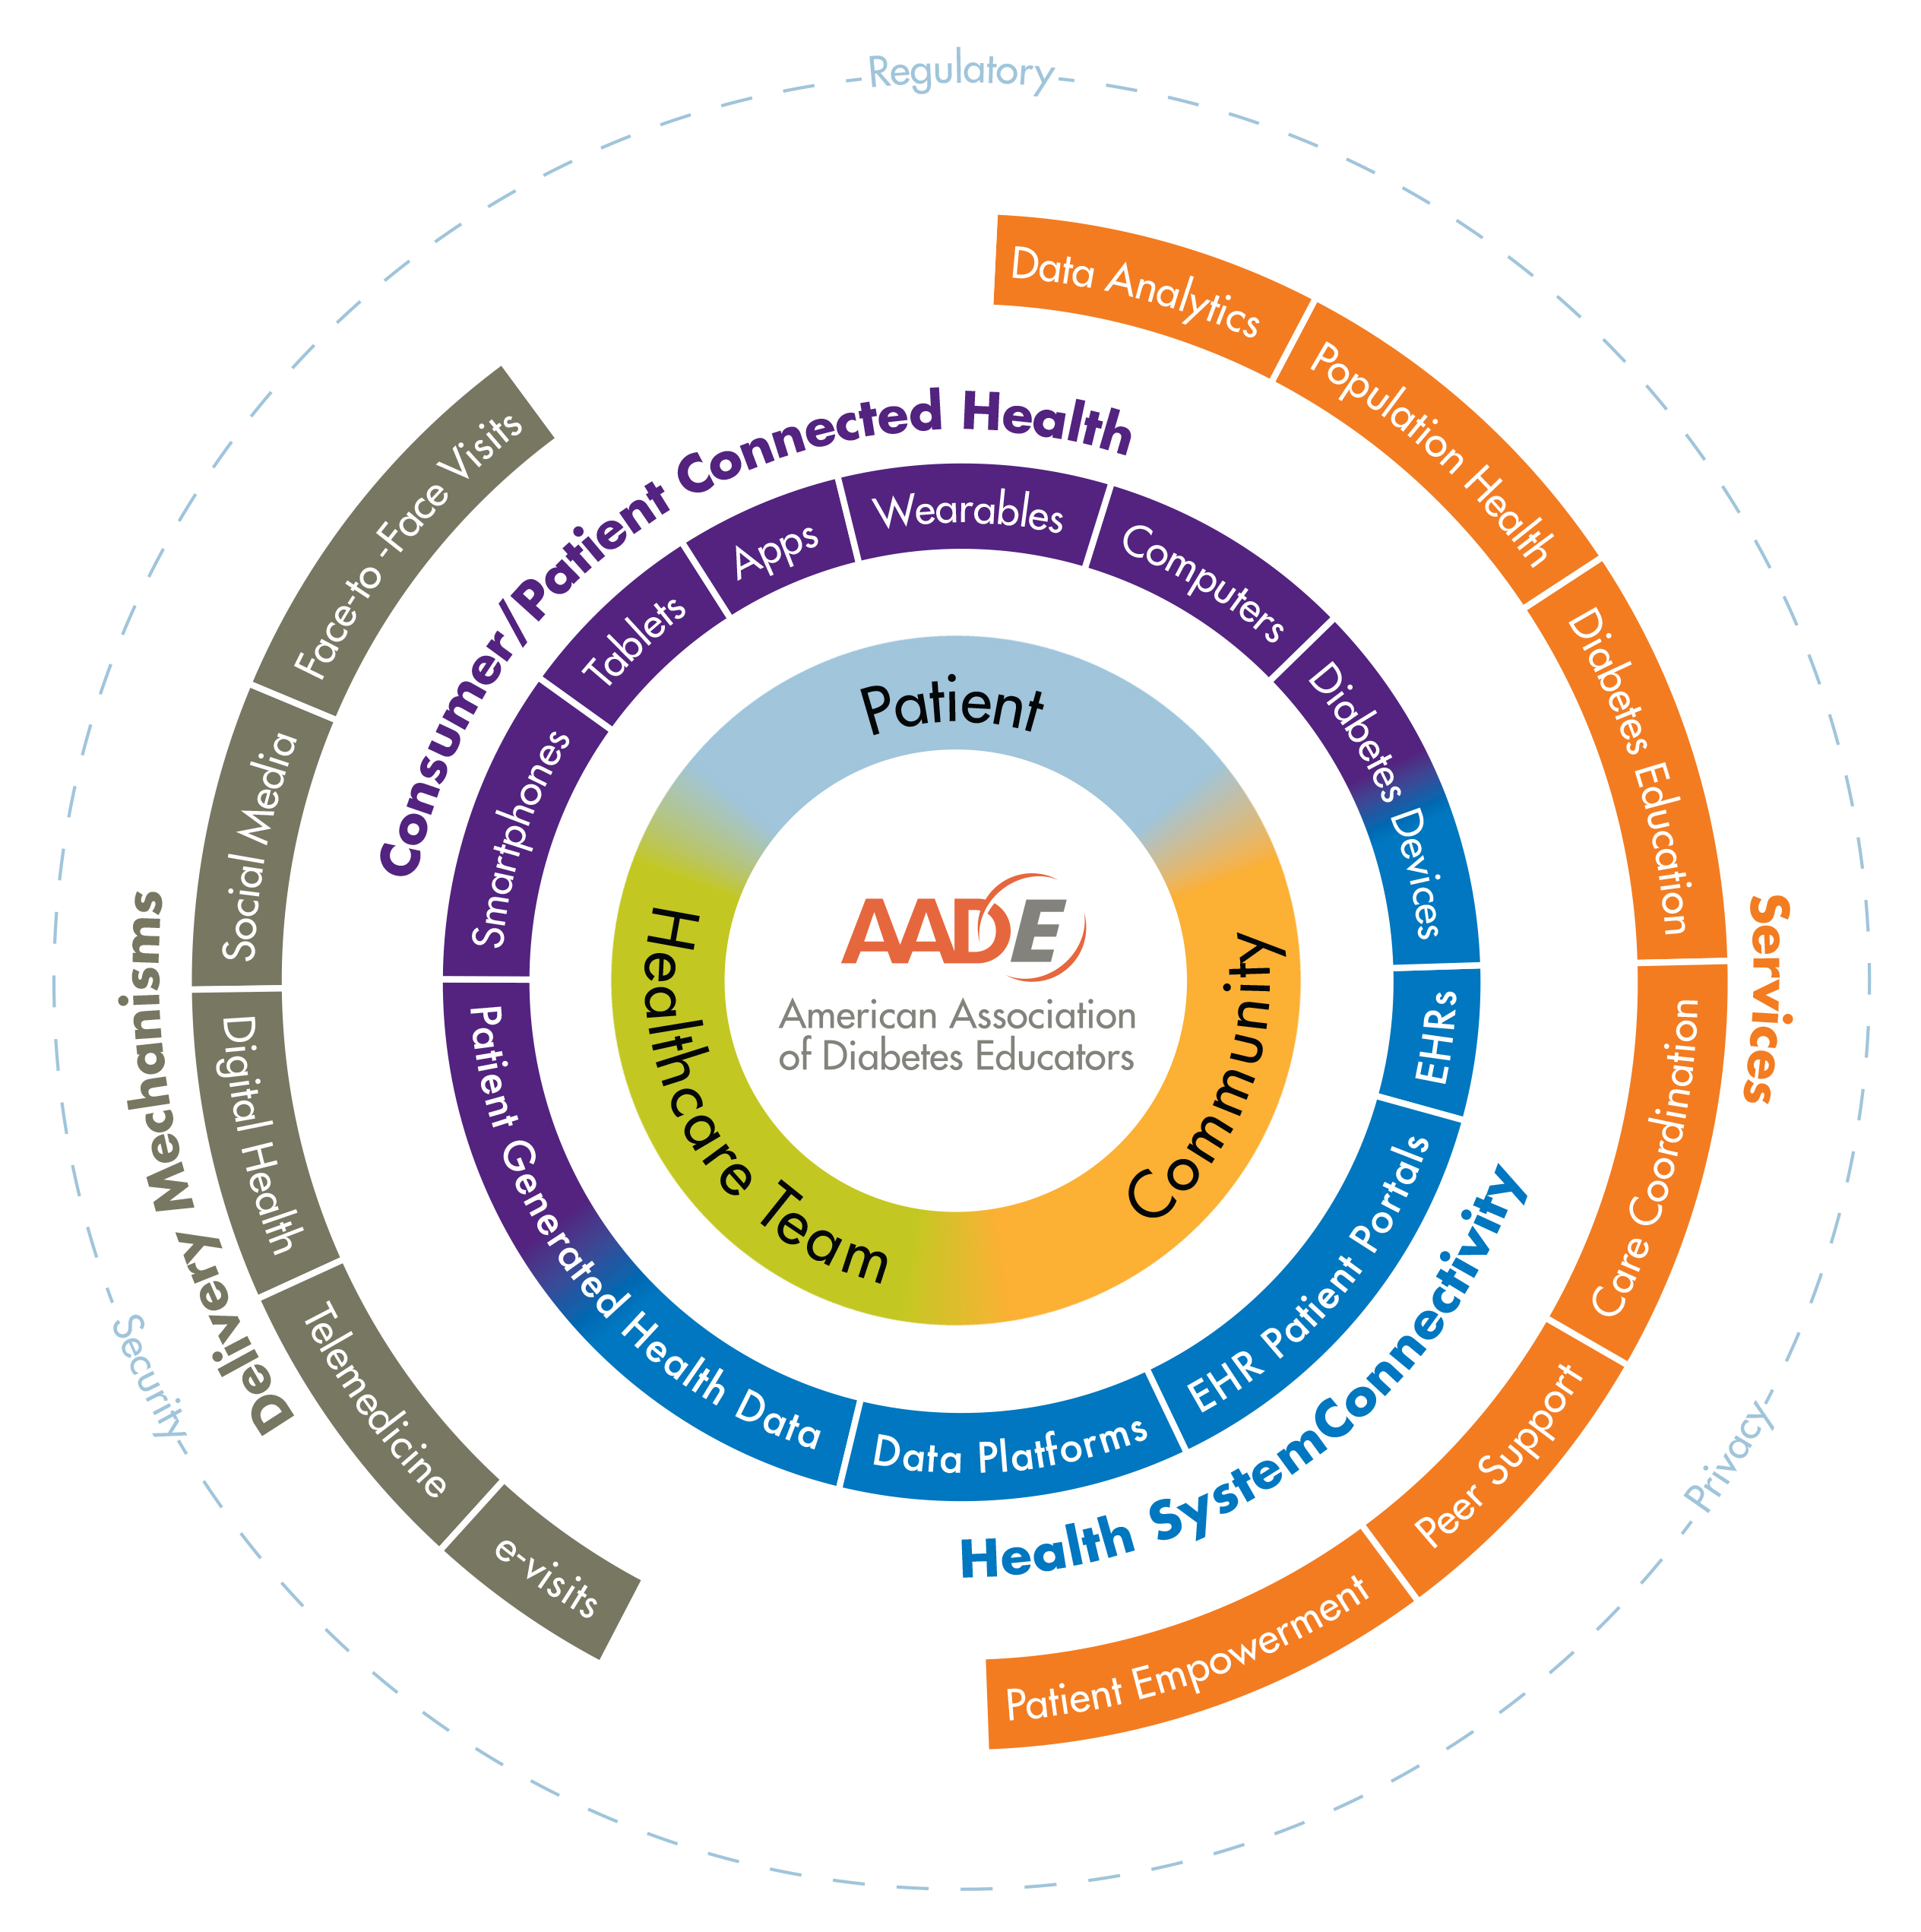 ... was presented at AADE16) and drafted a Technology Roadmap to guide the  workgroup's initiatives.